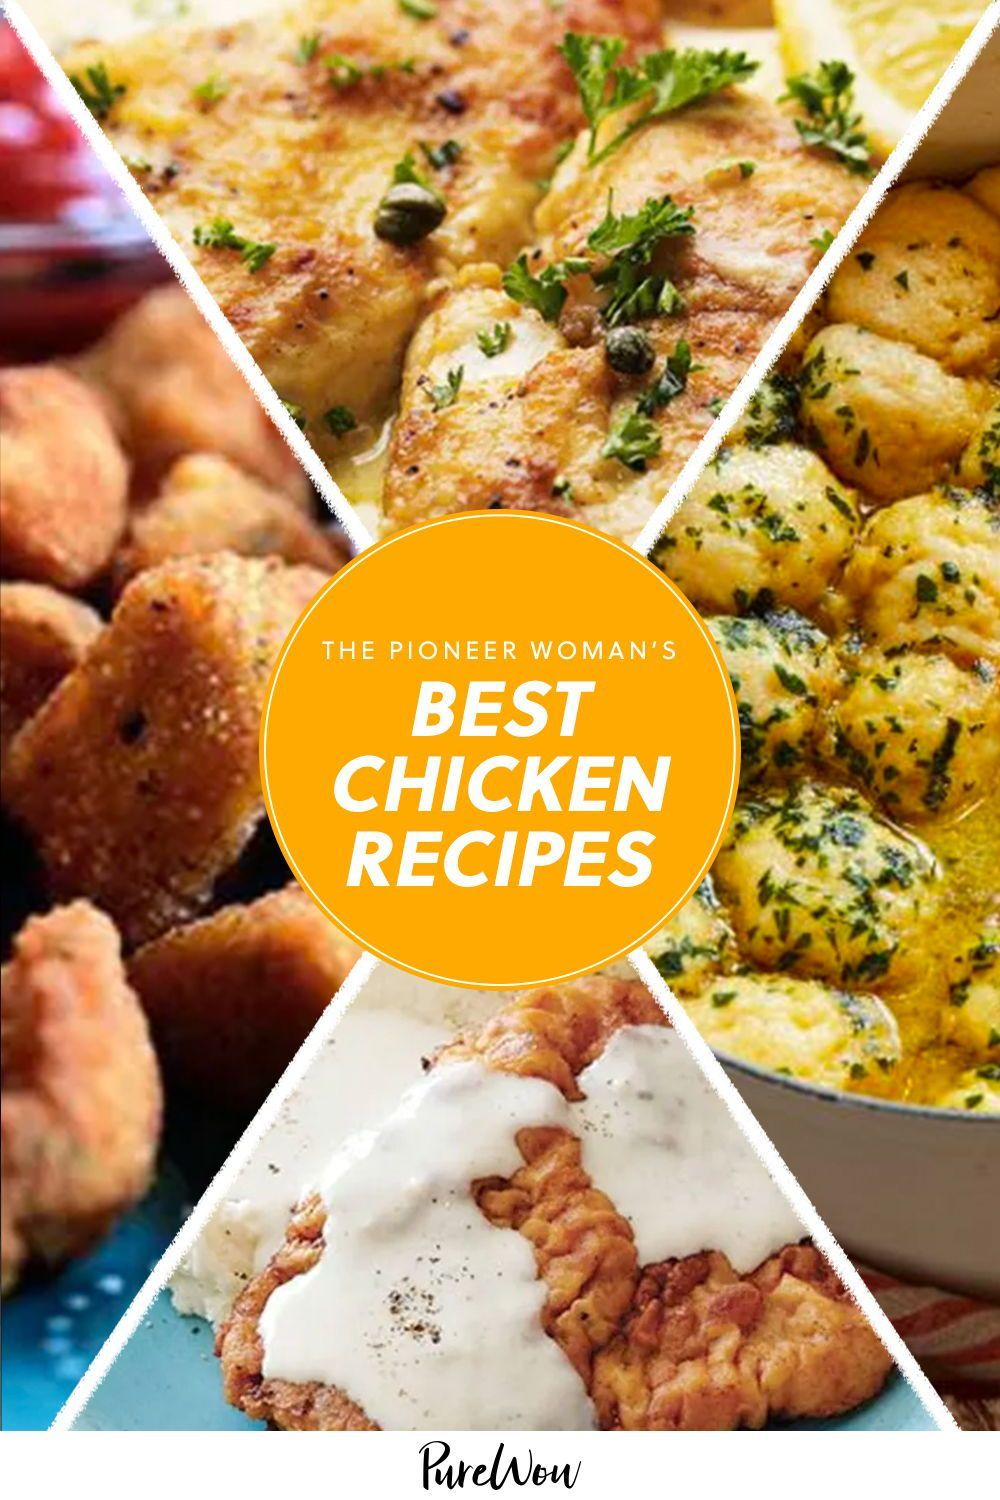 The Pioneer Woman S Best Chicken Recipes Chicken Recipes Recipes Best Chicken Recipes